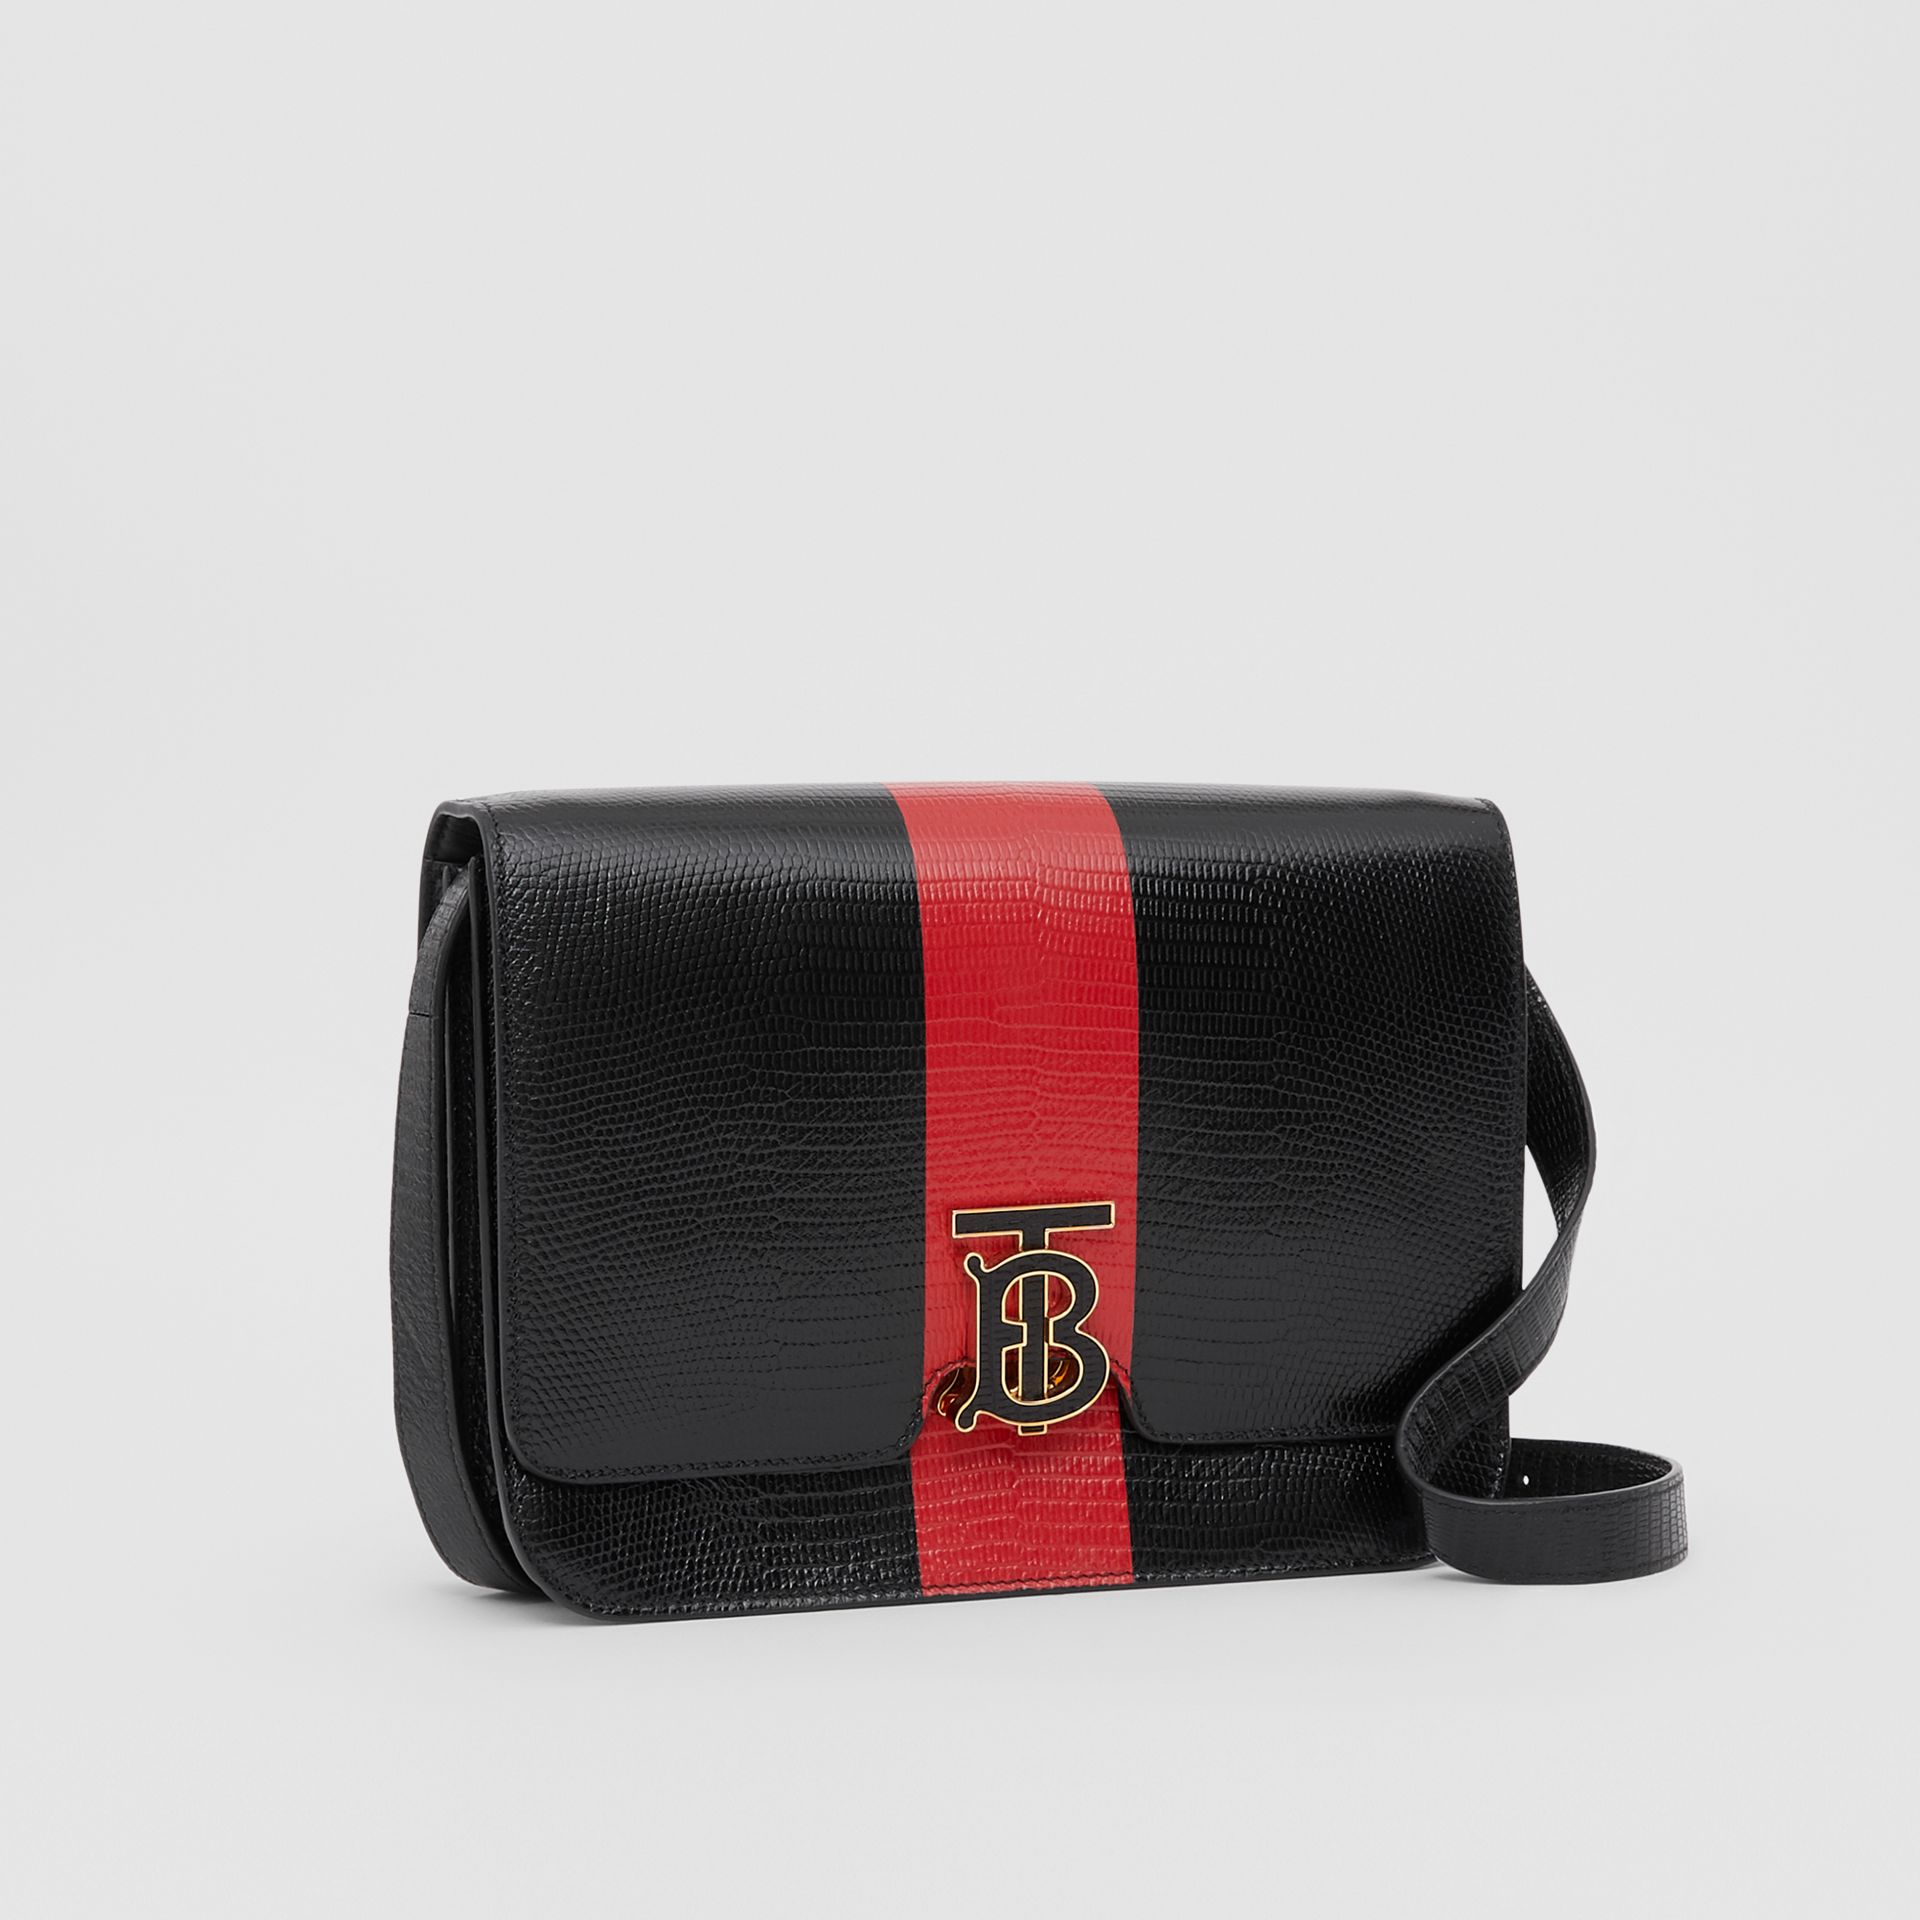 Medium Striped Embossed Leather TB Bag in Black - Women | Burberry United States - gallery image 6